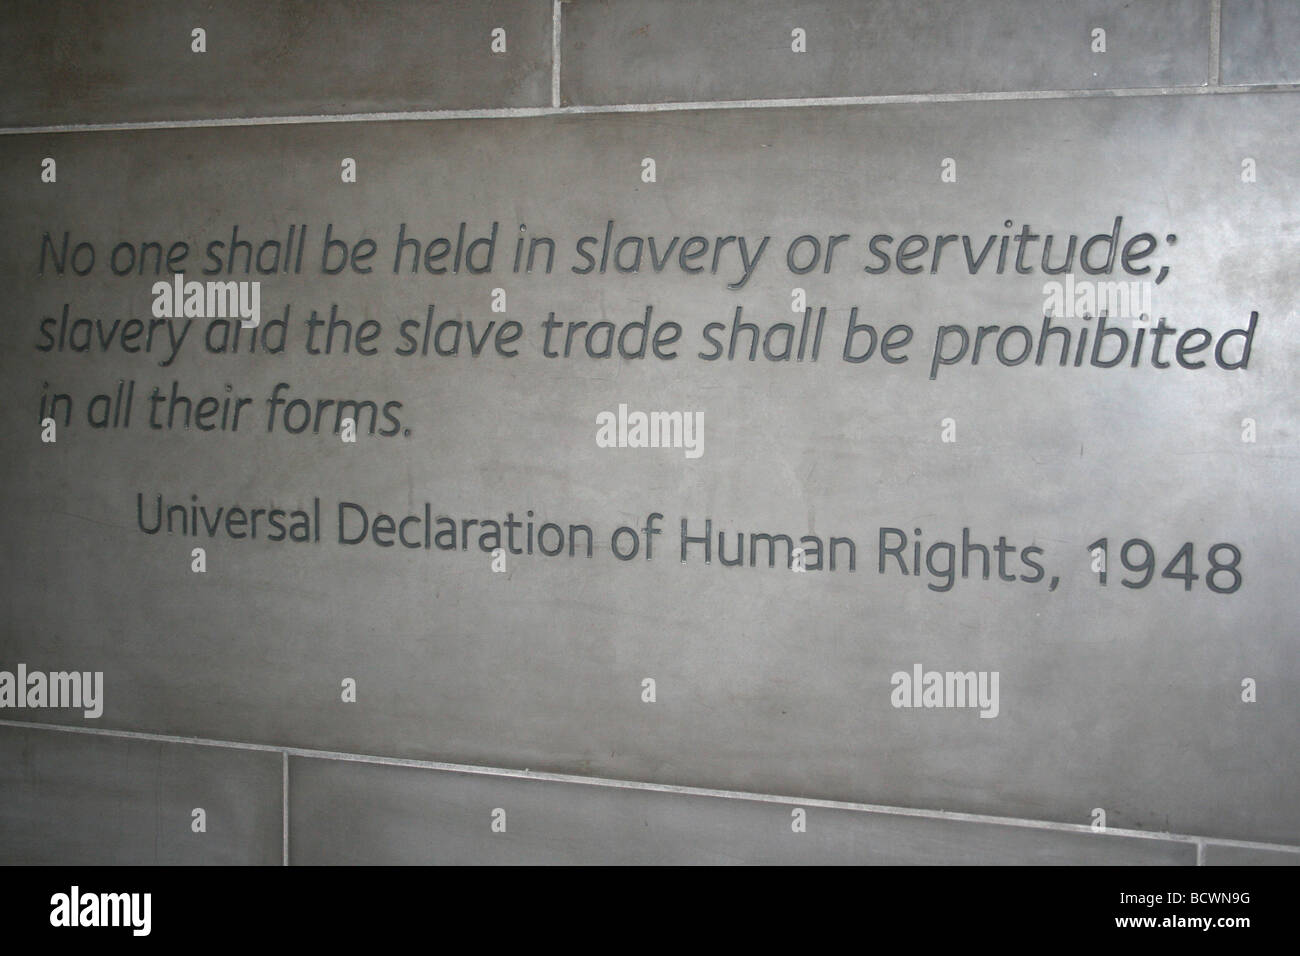 Quotation On The Freedom and Enslavement Wall In The International Slavery Museum, Liverpool, UK - Stock Image